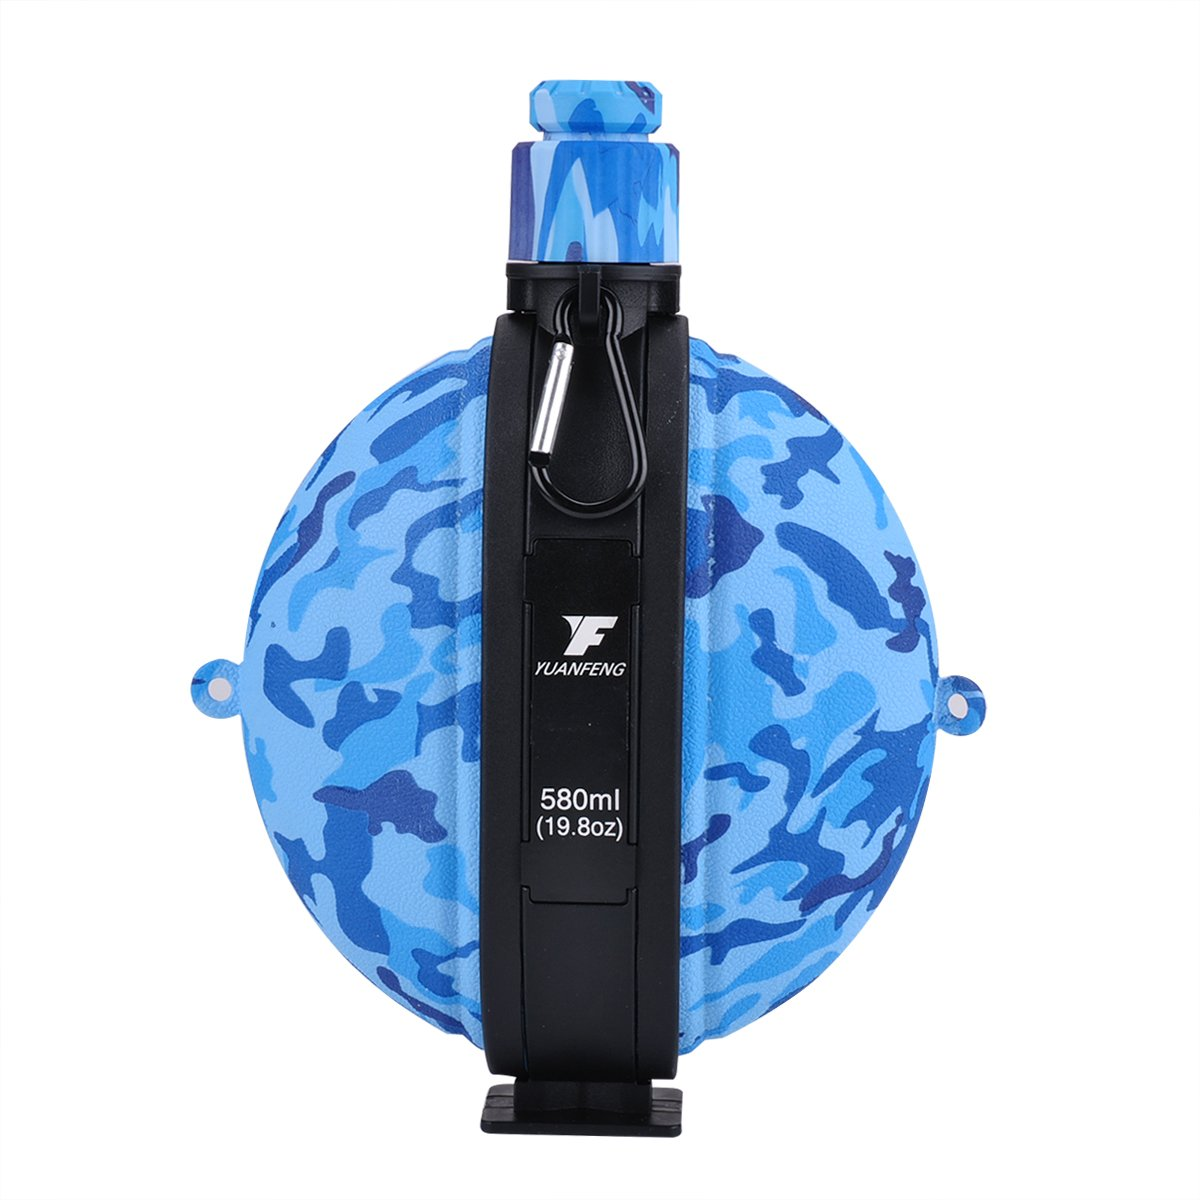 Fengyuan Collapsible Water Bottle, Yuanfeng Militaryポータブルシリコン水ケトルCanteenコンパス付きボトルキャップスポーツとアウトドア活動用BPAフリー19.8 Oz (Army Blue) B07DVMFM7Q